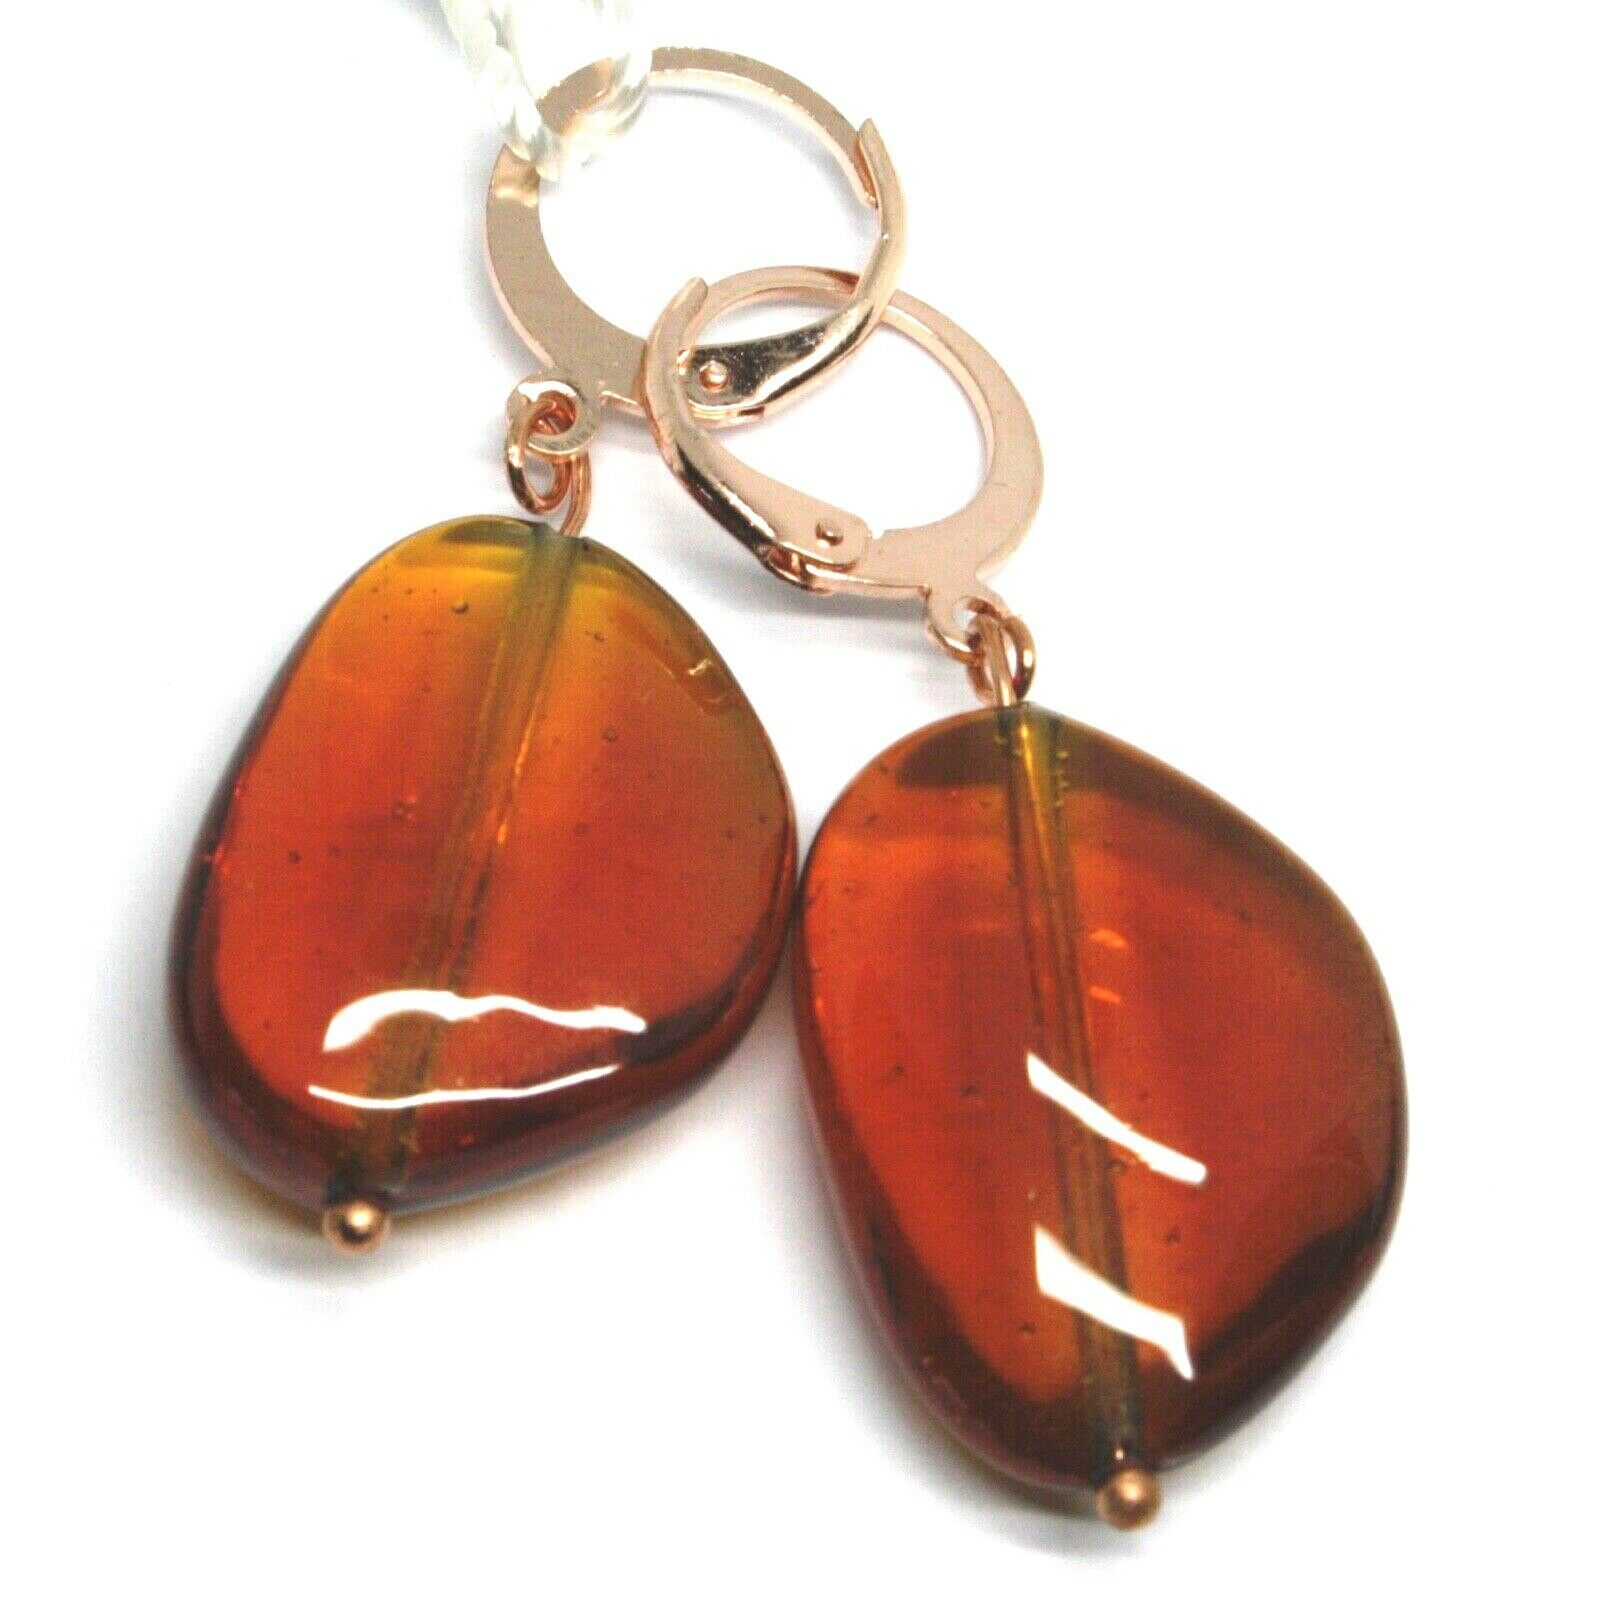 "PENDANT ROSE EARRINGS AMBER ROUNDED DROP MURANO GLASS 4cm 1.6"", MADE IN ITALY"